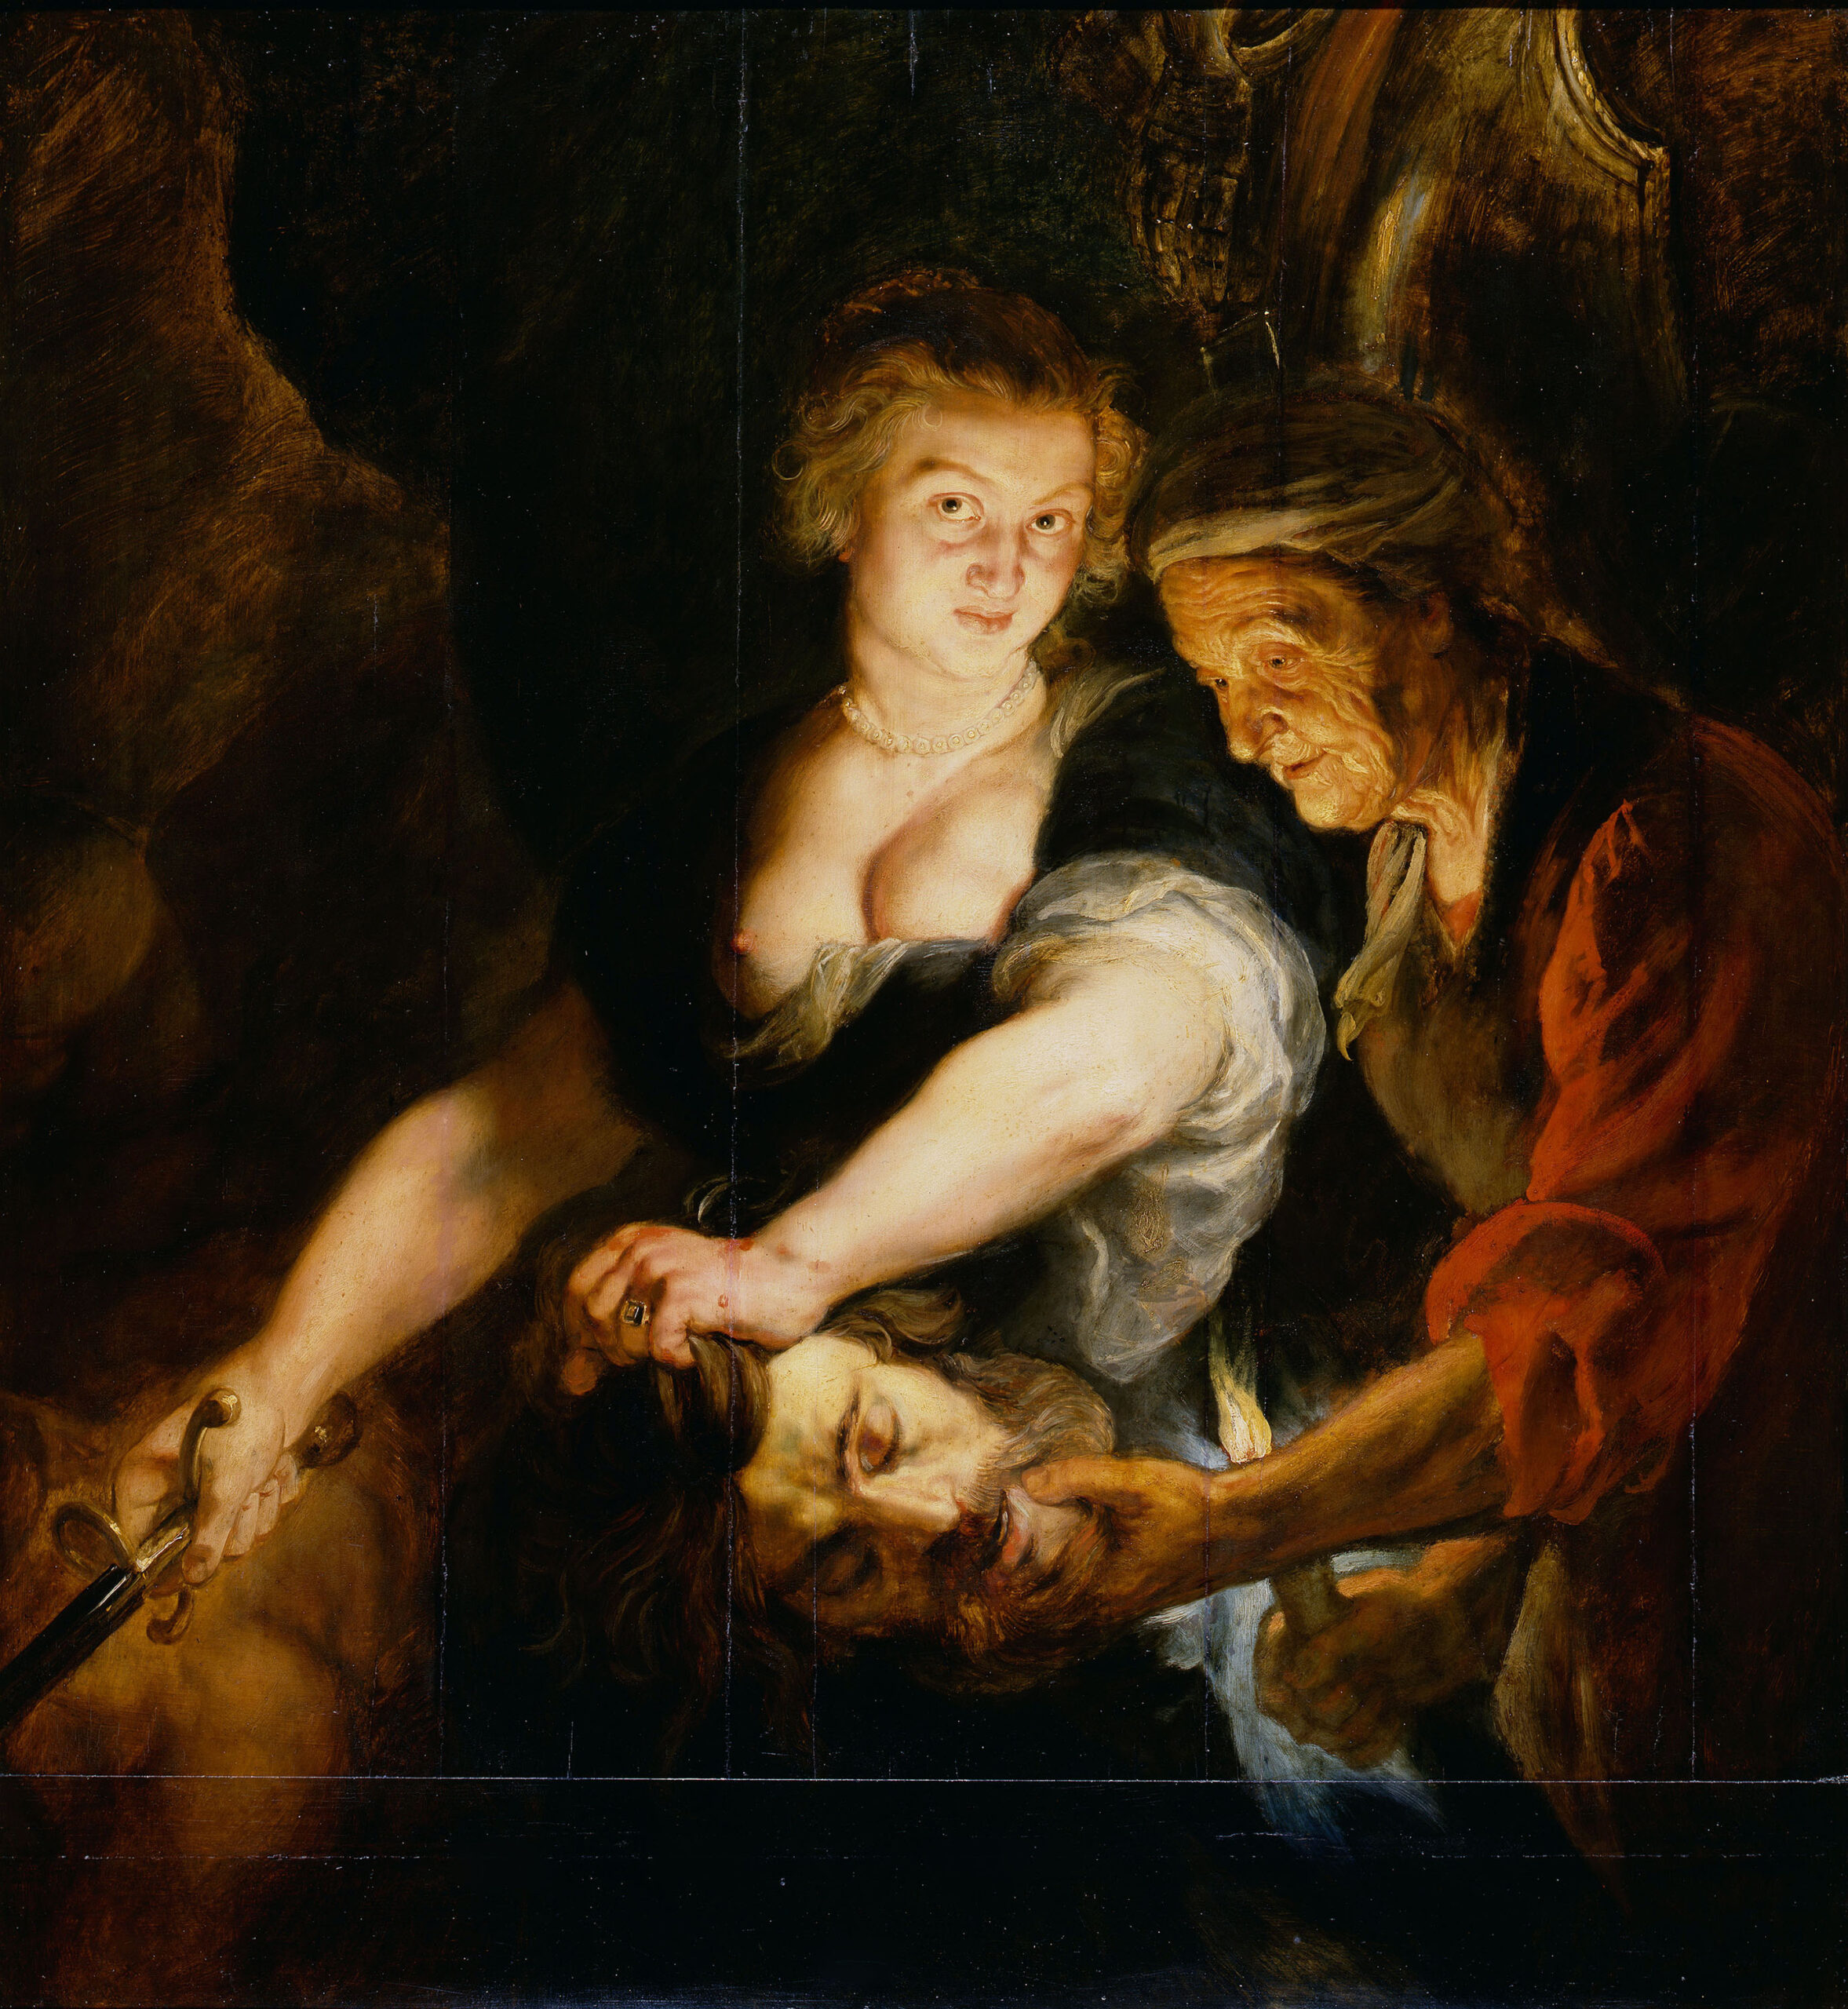 Fig. 6. Peter Paul Rubens (1577-1640), Judith with the Head of Holofernes, ca. 1616, panel, 120 x 111 cmHerzog Anton Ulrich-Museum Braunschweig, inv. no. GG 87